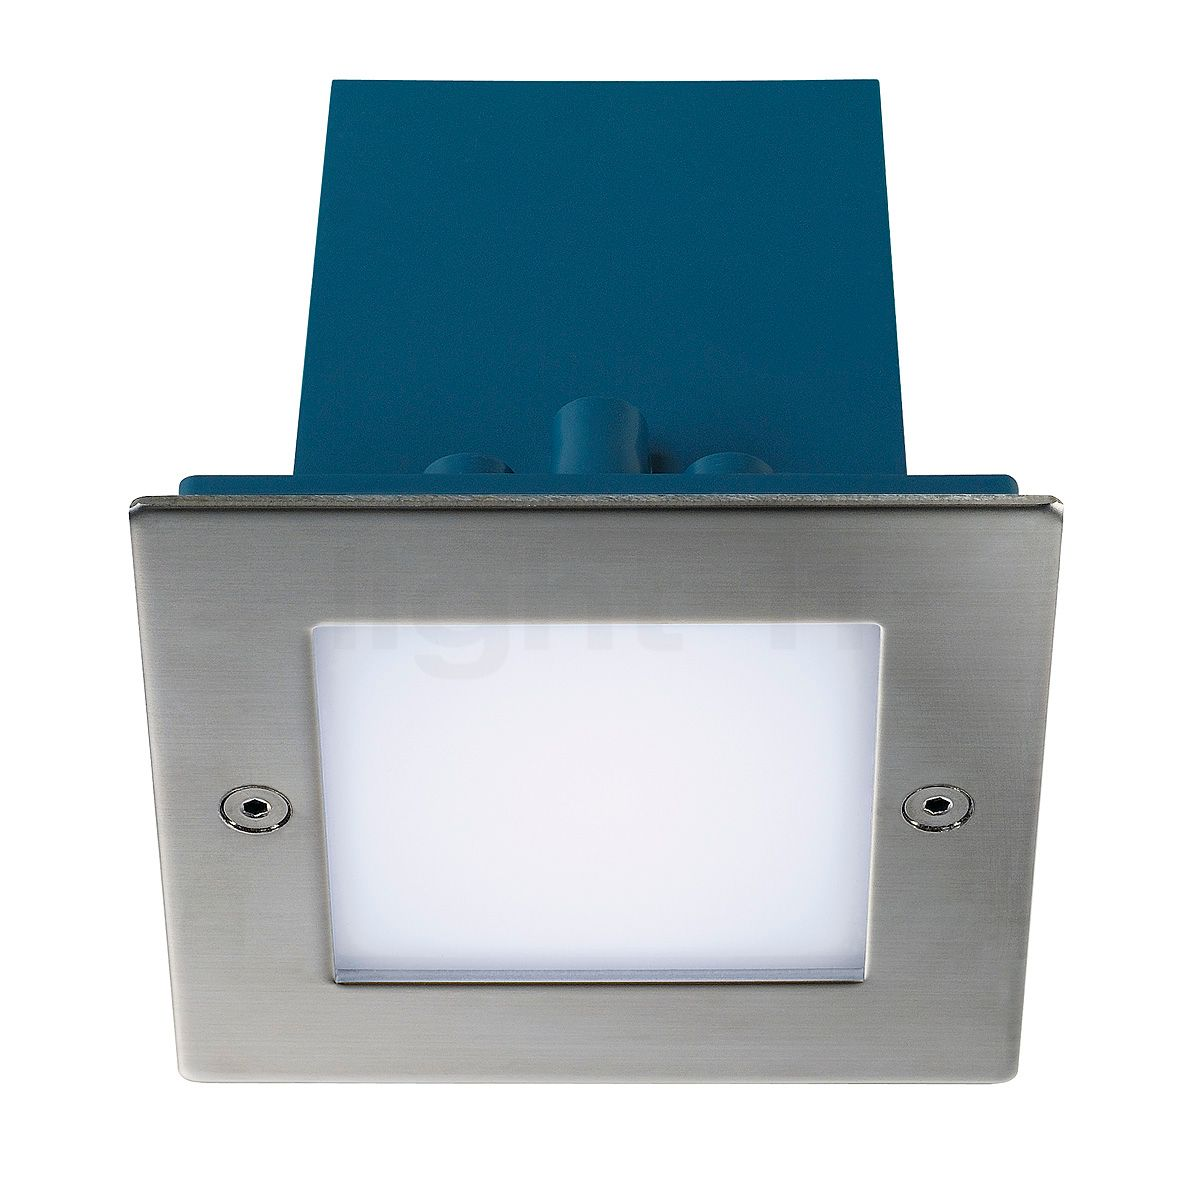 Slv frame applique da incasso a parete led   light11.it